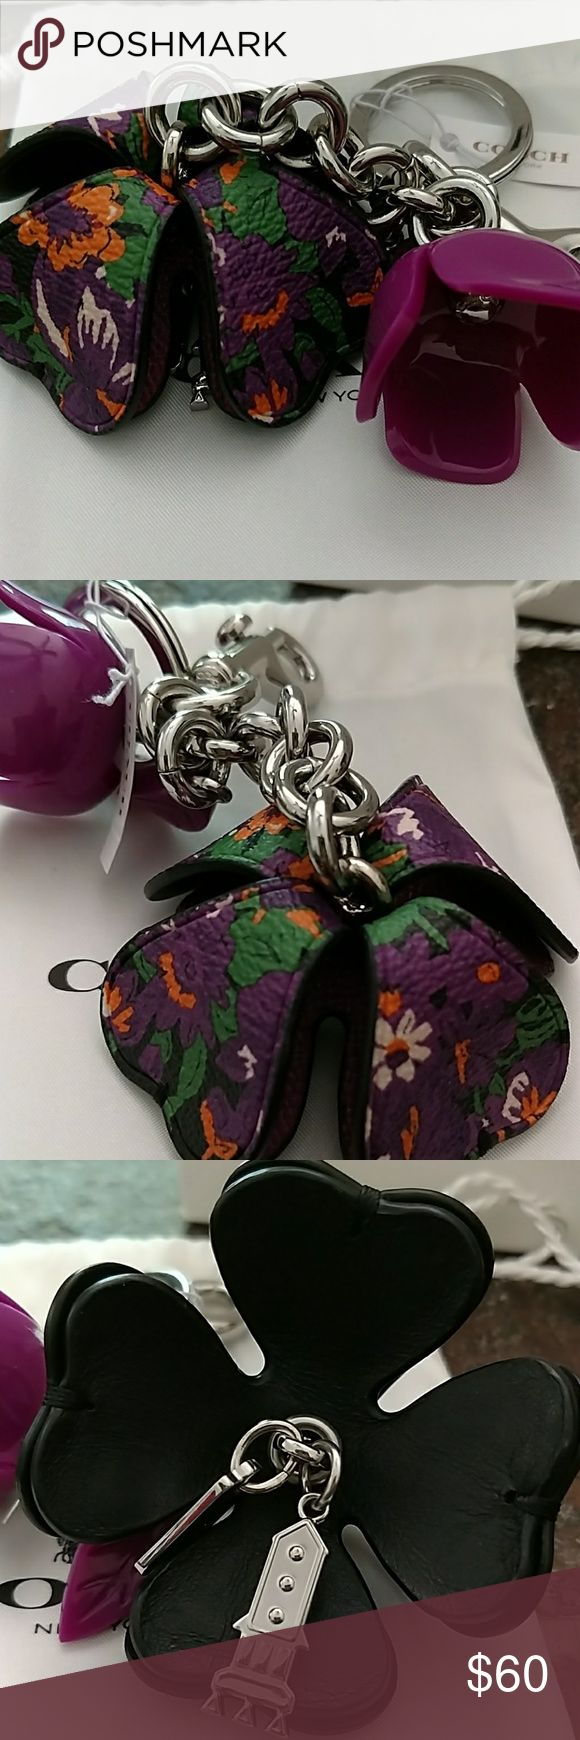 COACH TEAROSE KEYCHAIN COACH TEAROSE RESIN AND LEATHER KEYRING. PURPLE RESIN FLOWER AND LEAF. PURPLE FLOWERED LEATHER ROSE ATTACHMENT WITH  SILVER ATTACHMENT UNDERNEATH. SILVER KEYRING, CLIP AND CHAIN. NWT. COMES WITH EVERYTHING PICTURED. KEYCHAIN, COACH POUCH, COACH JEWELRY CARE MANUAL, COACH GIFT BOX. MADE PARTICULAR PIECE WAS MADE IN THAILAND. COACH Accessories Key & Card Holders